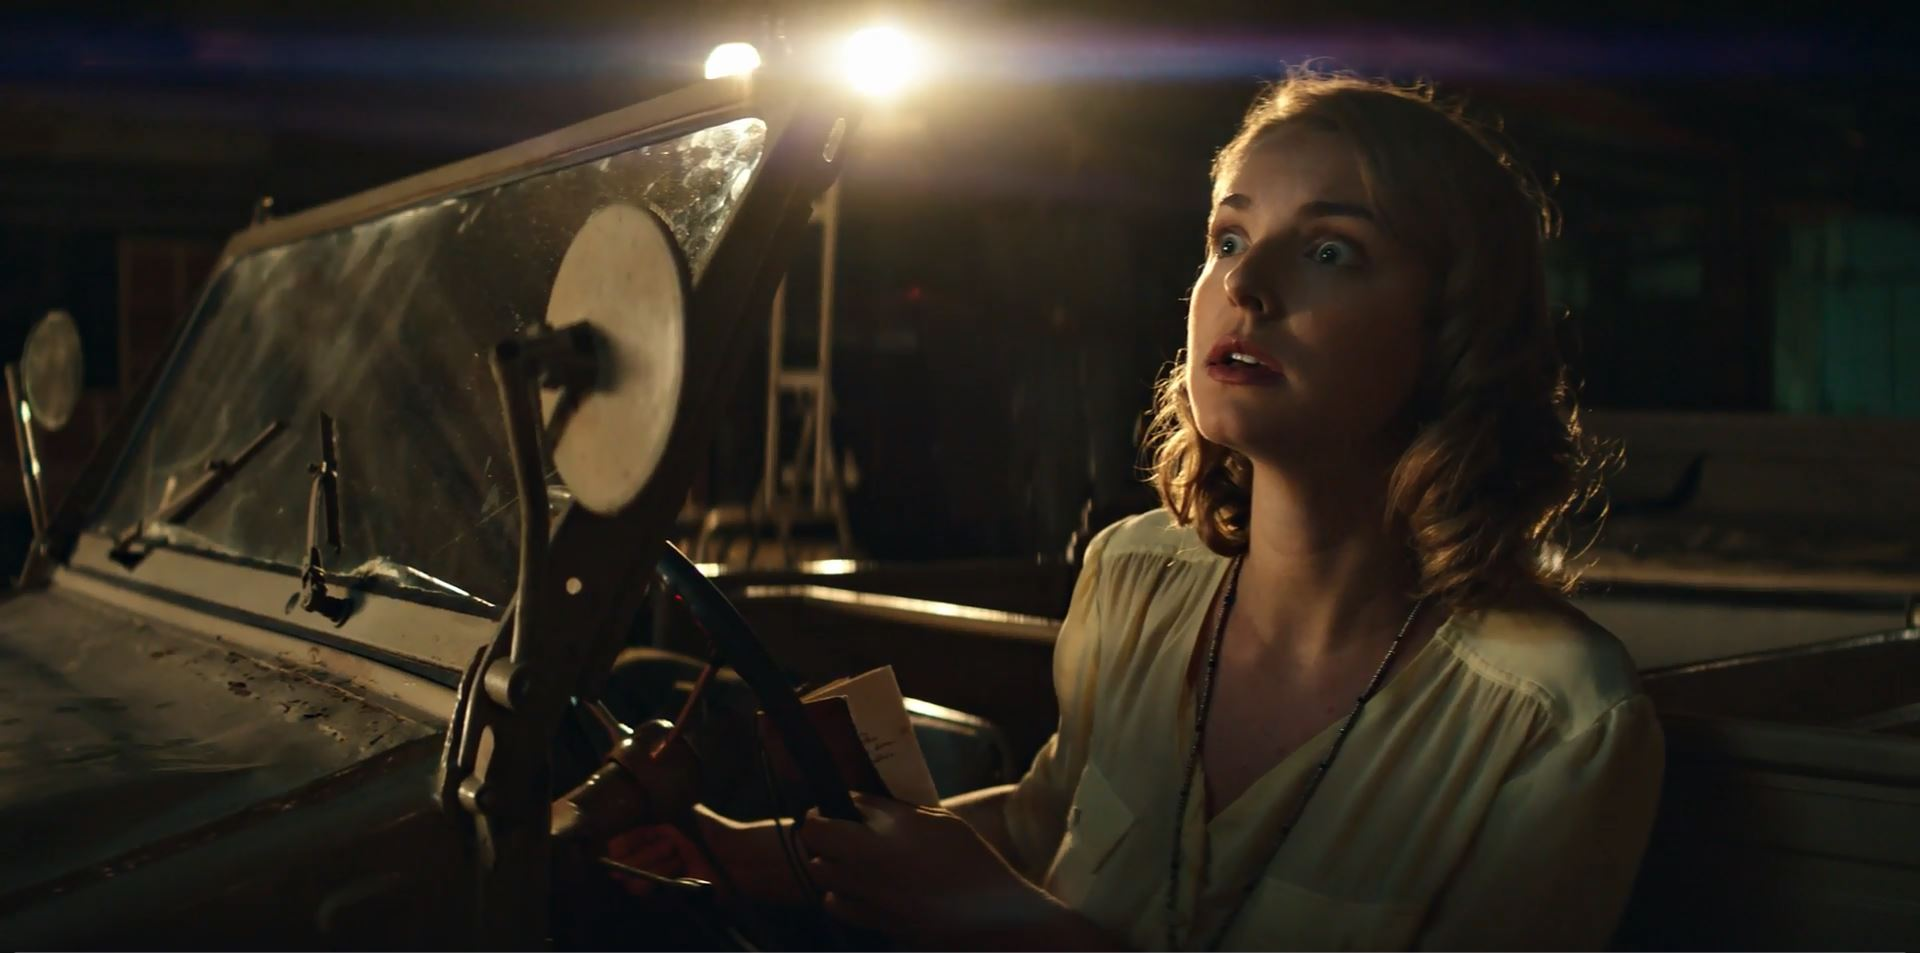 Stargate Origins - Ellie Gall as Catherine Langford